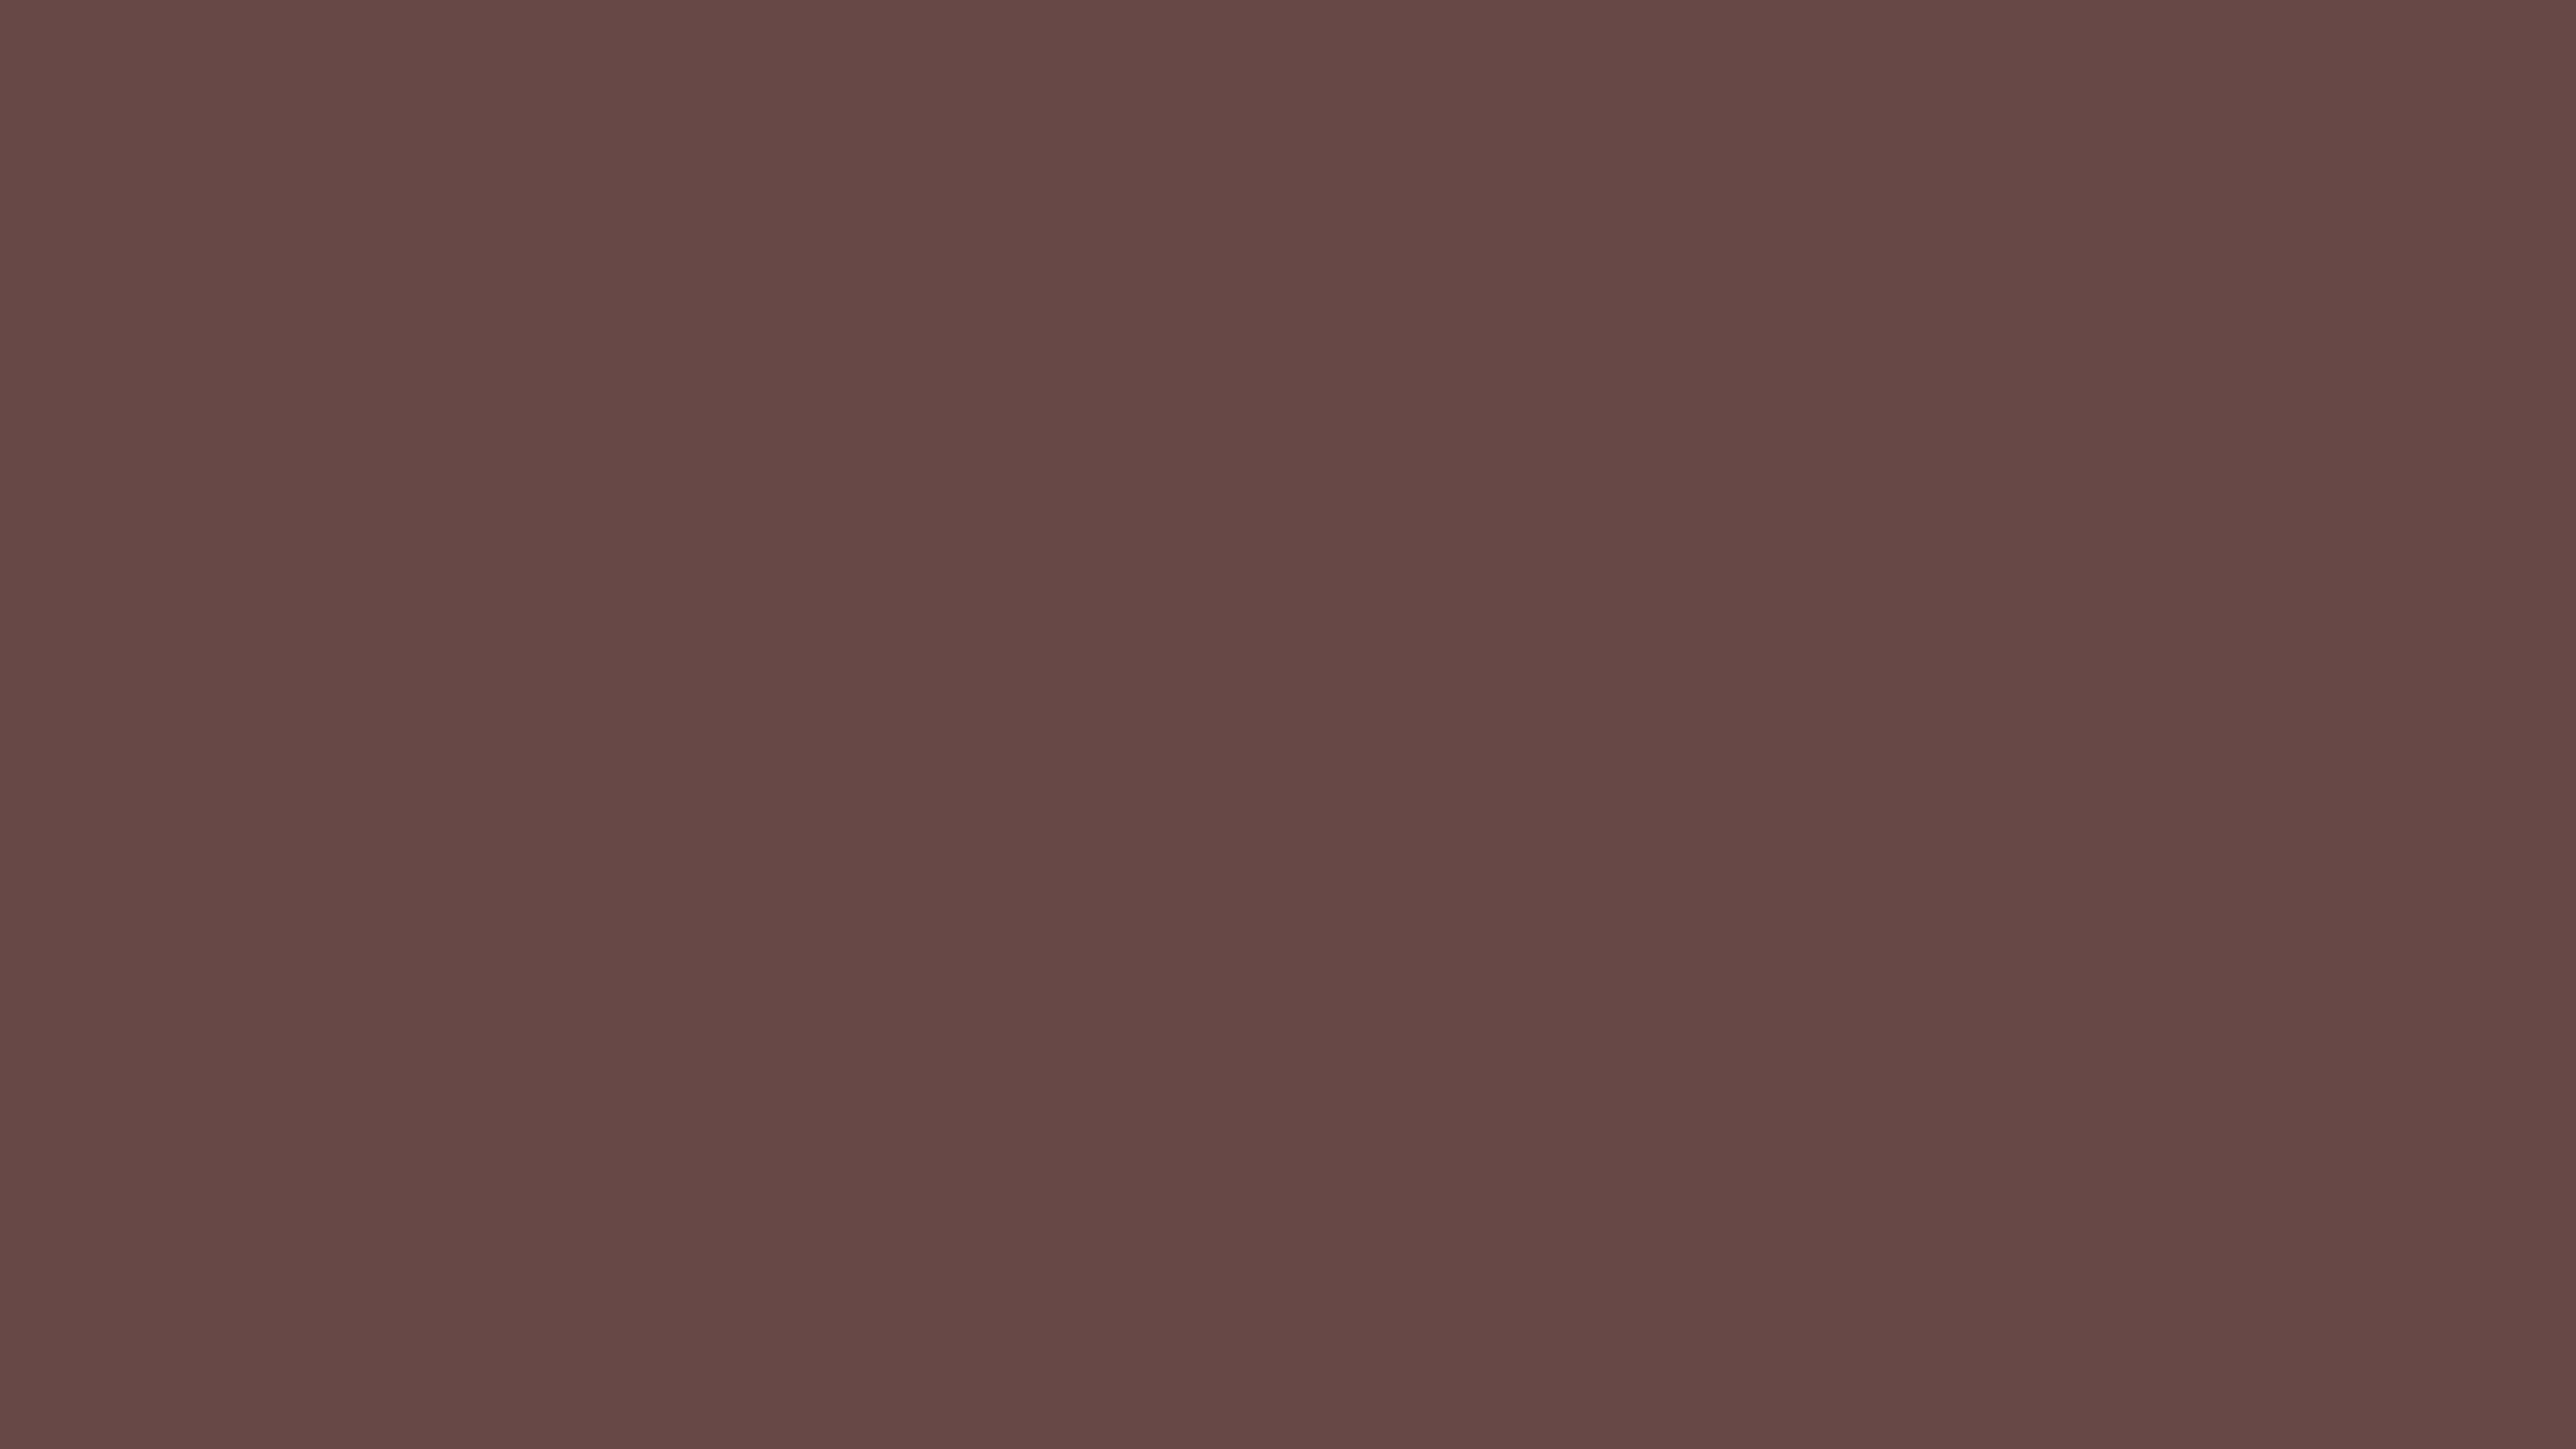 3840x2160 Rose Ebony Solid Color Background